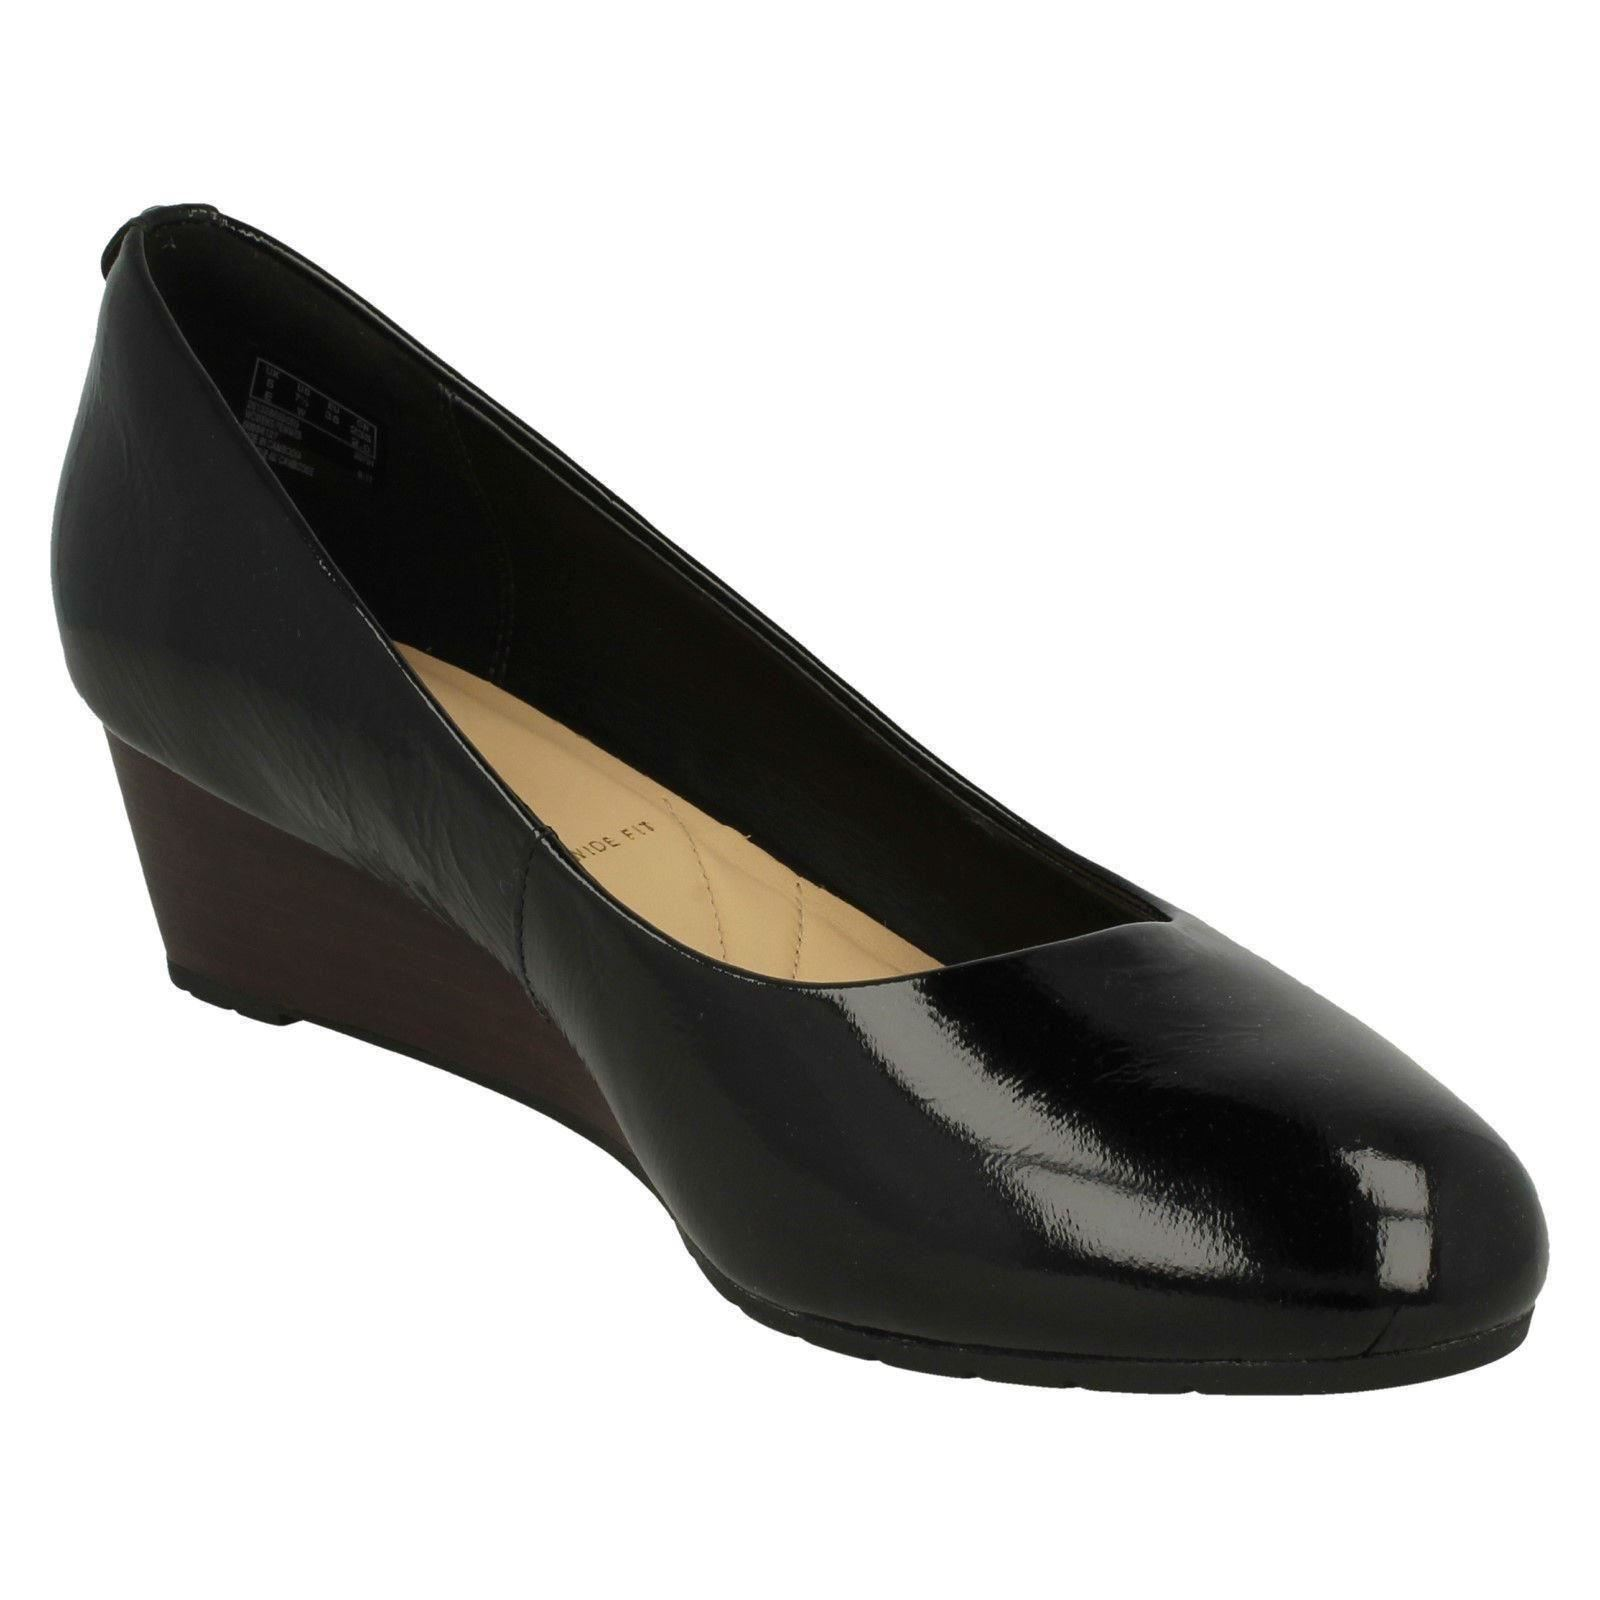 Descuento barato Ladies Clarks Low Wedge Smart Court Shoes Vendra Bloom